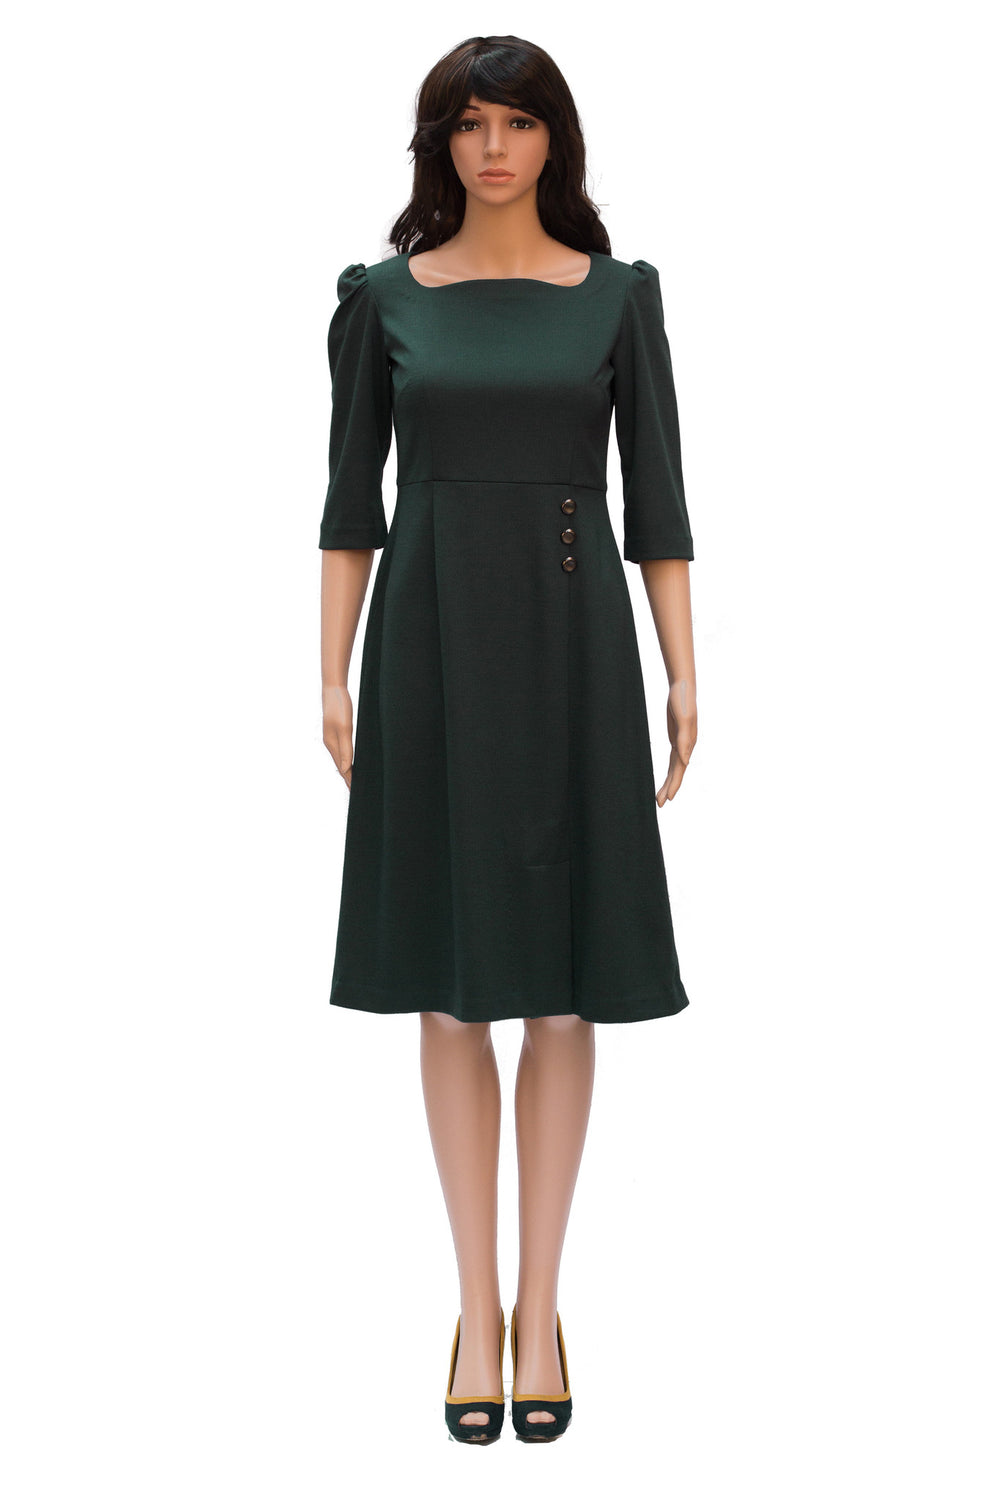 Formal apparel: Knee length green dress with three fourth sleeves and slit in knee